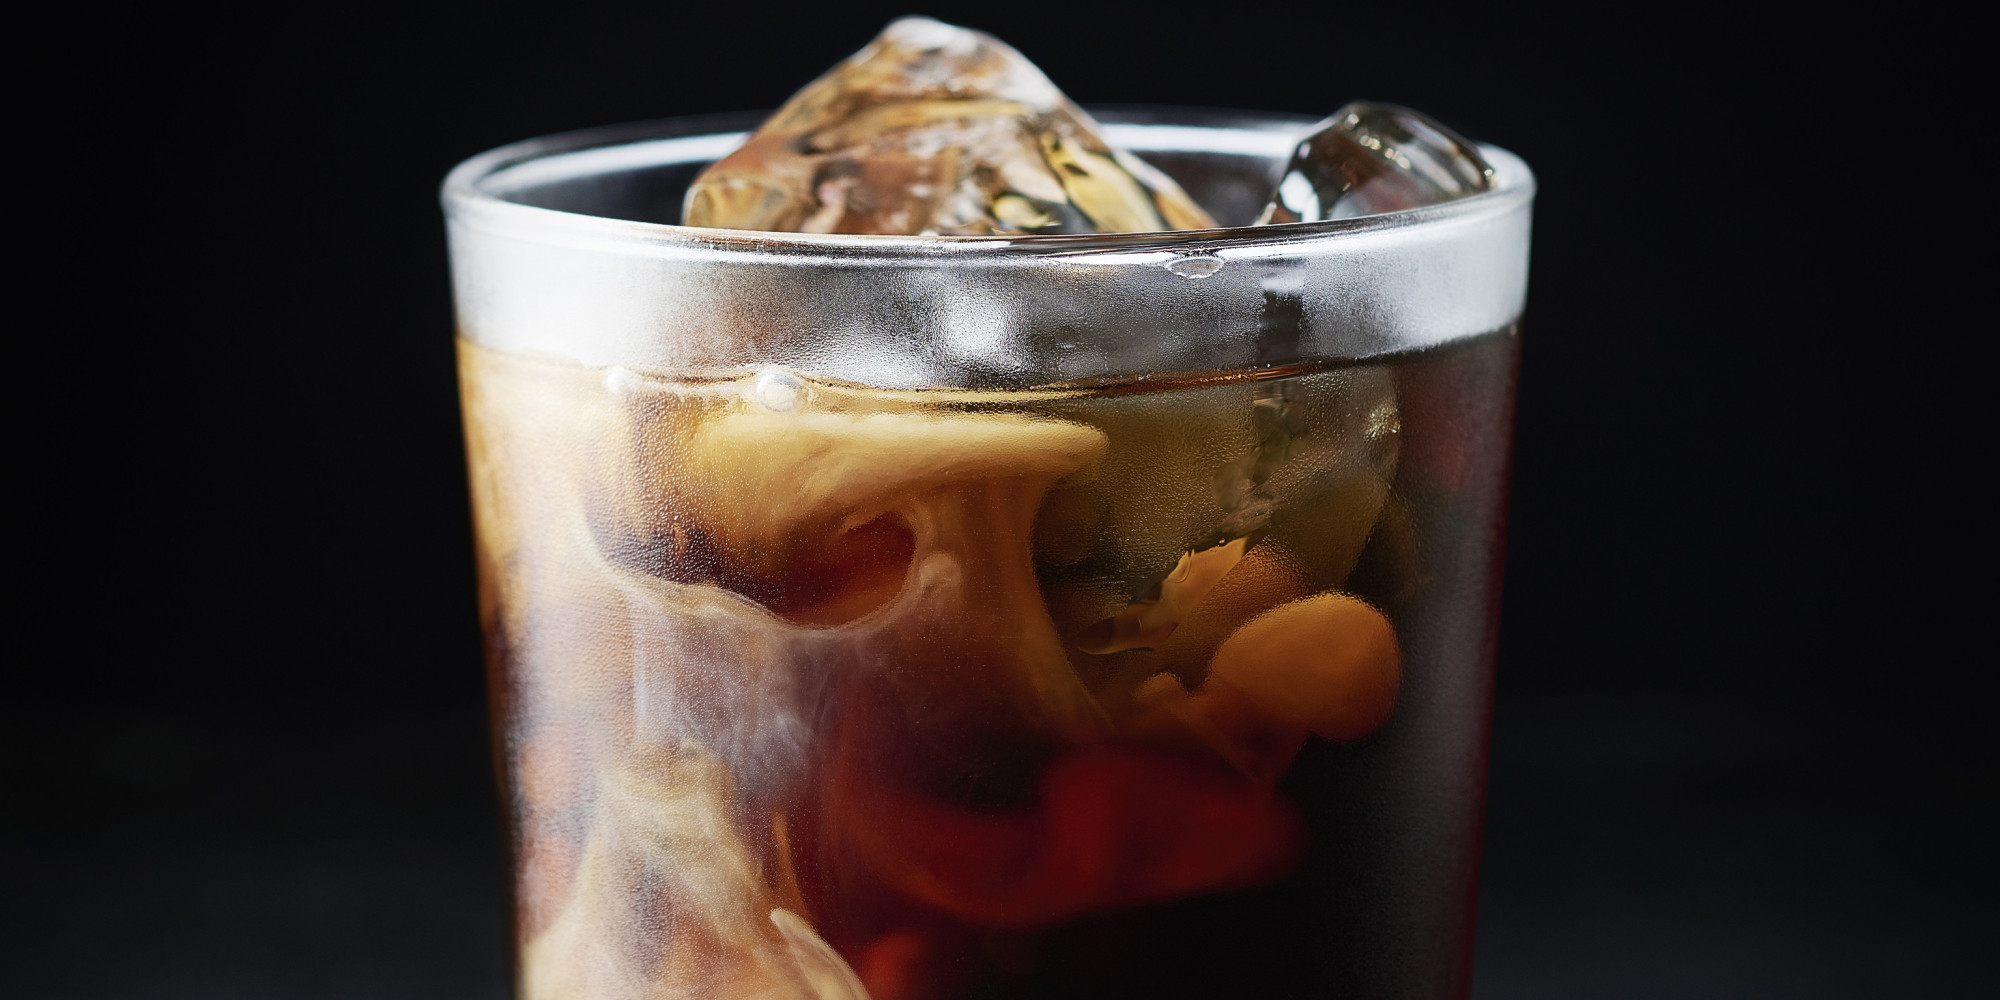 How to make cold brew coffee: a step by step photo tutorial and recipe